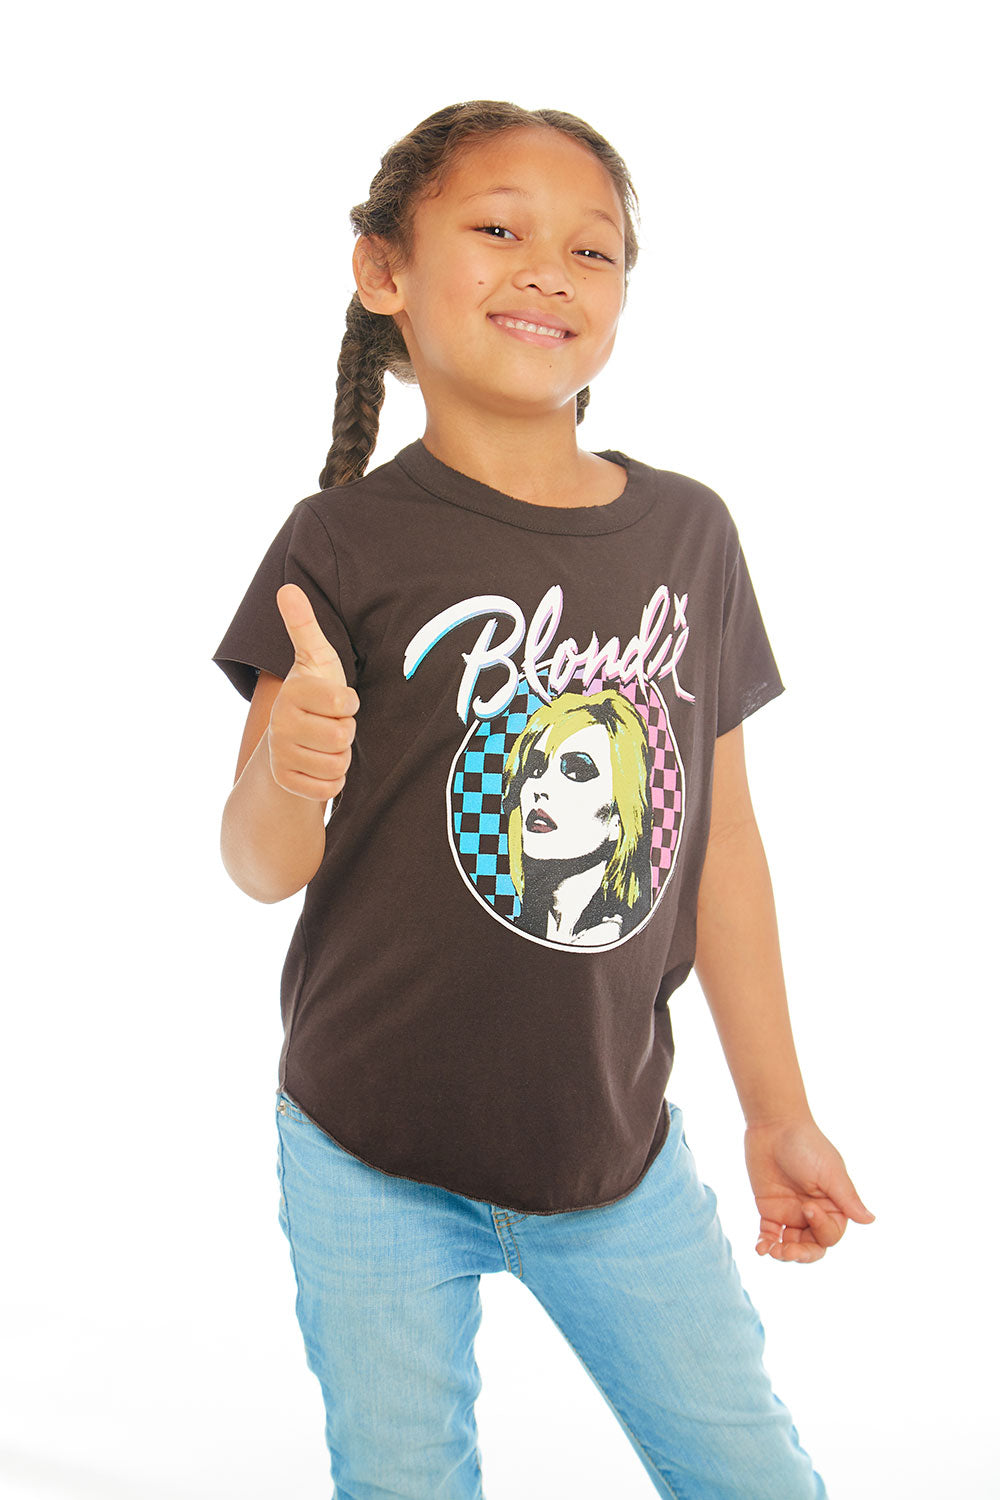 Blondie - Checkered Blondie GIRLS chaserbrand4.myshopify.com